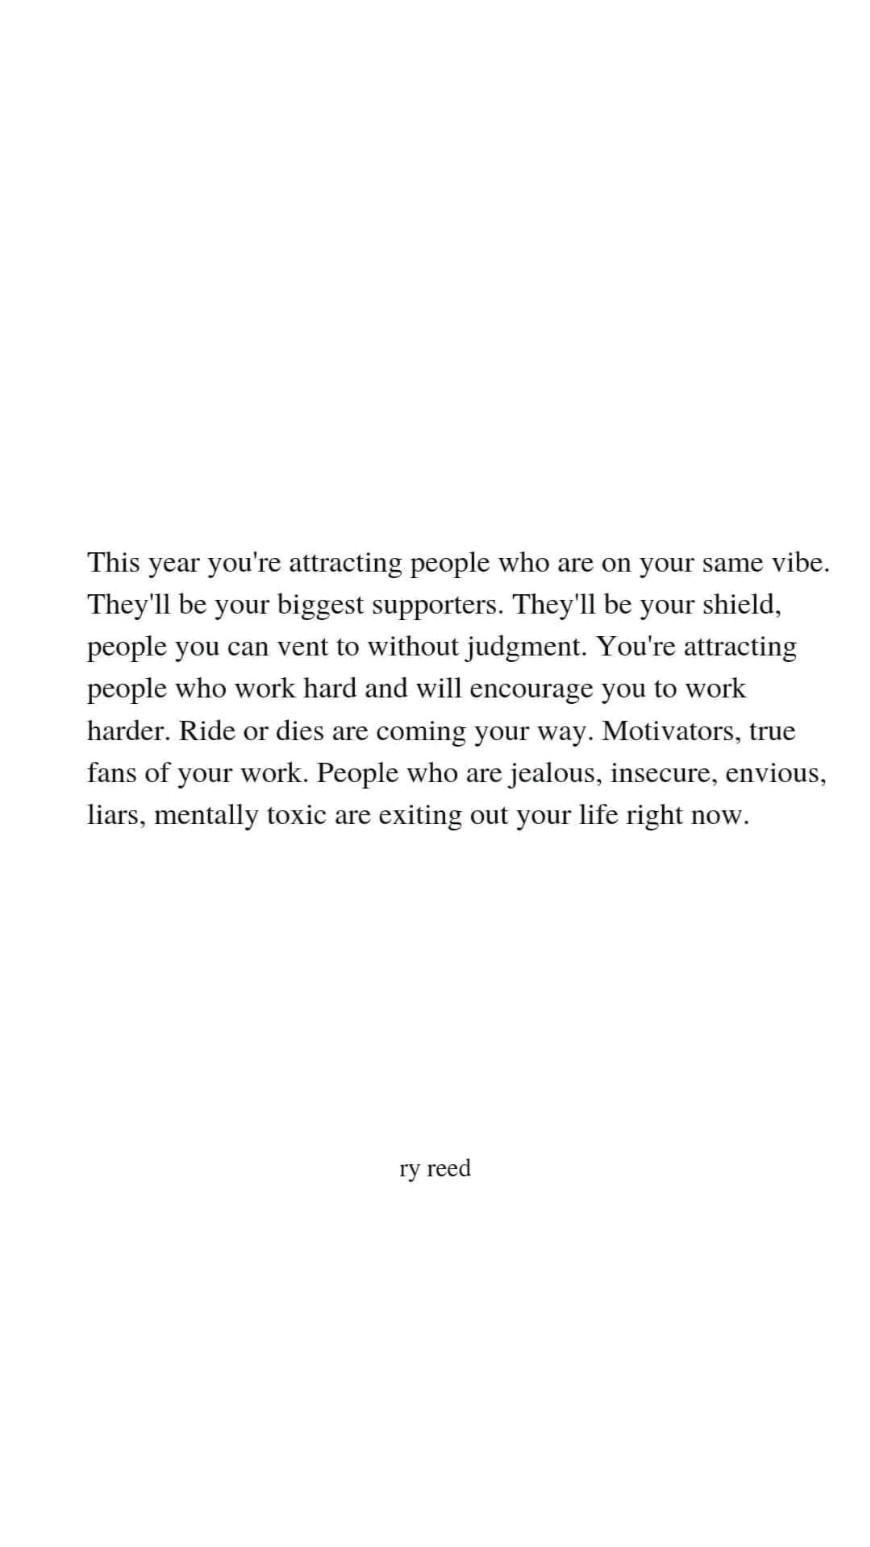 This year you're attracting people who will be good to you